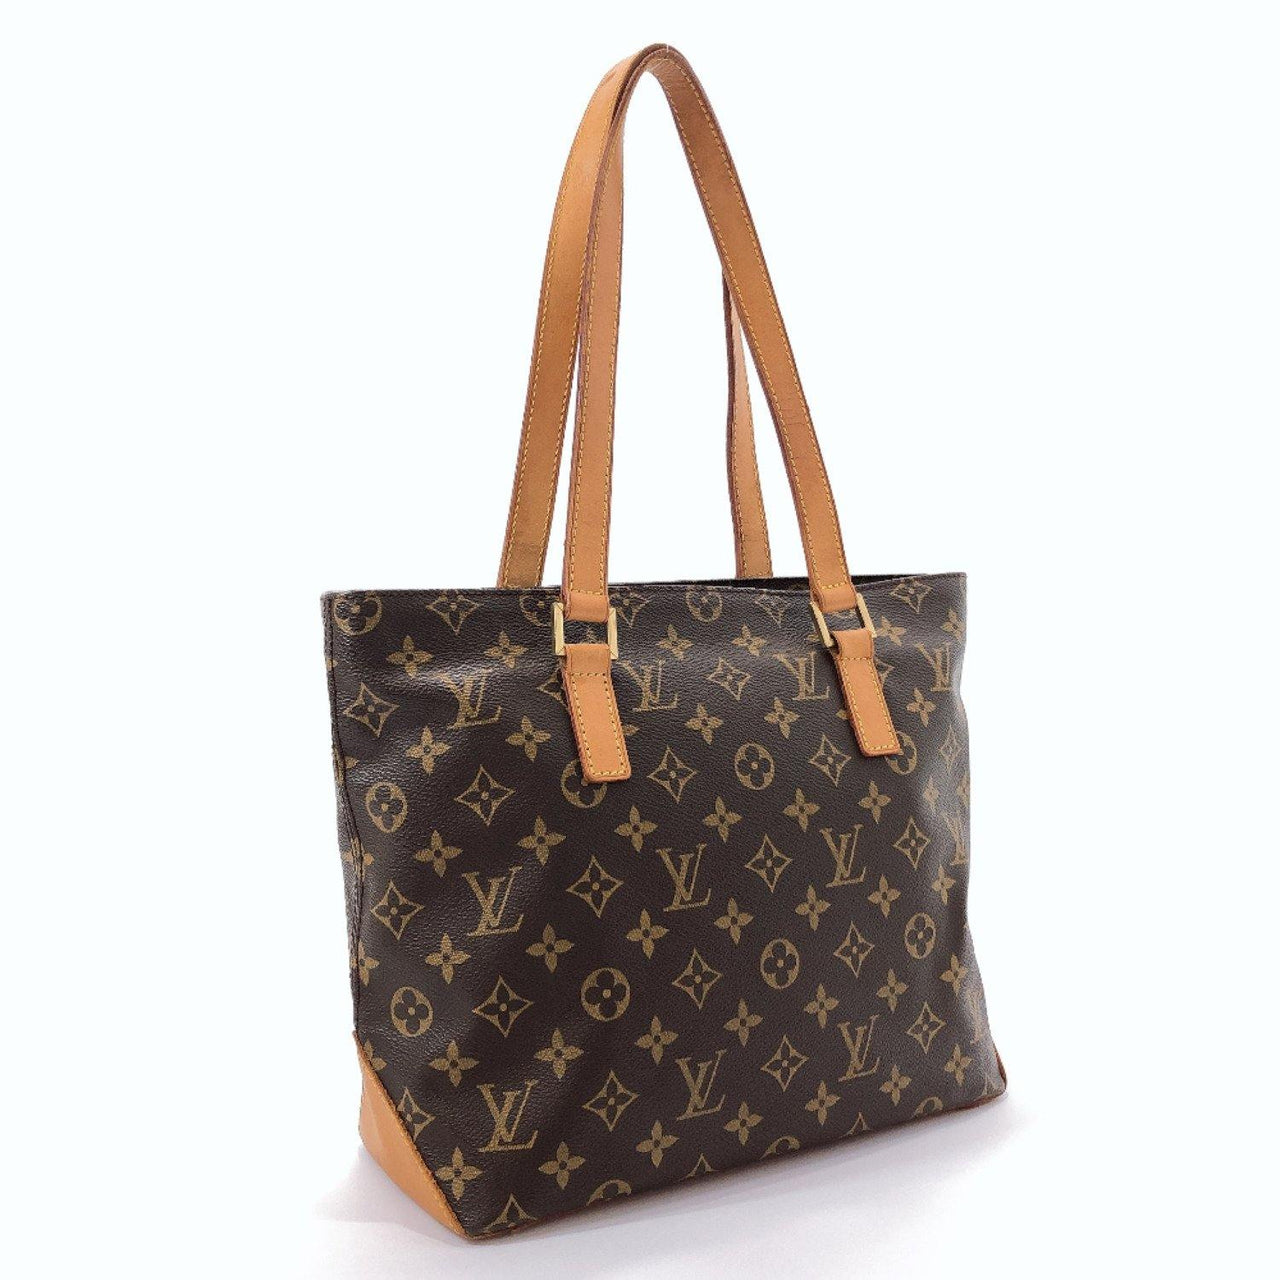 LOUIS VUITTON Handbag M51148 Cabas piano Monogram canvas Brown Women Used - JP-BRANDS.com